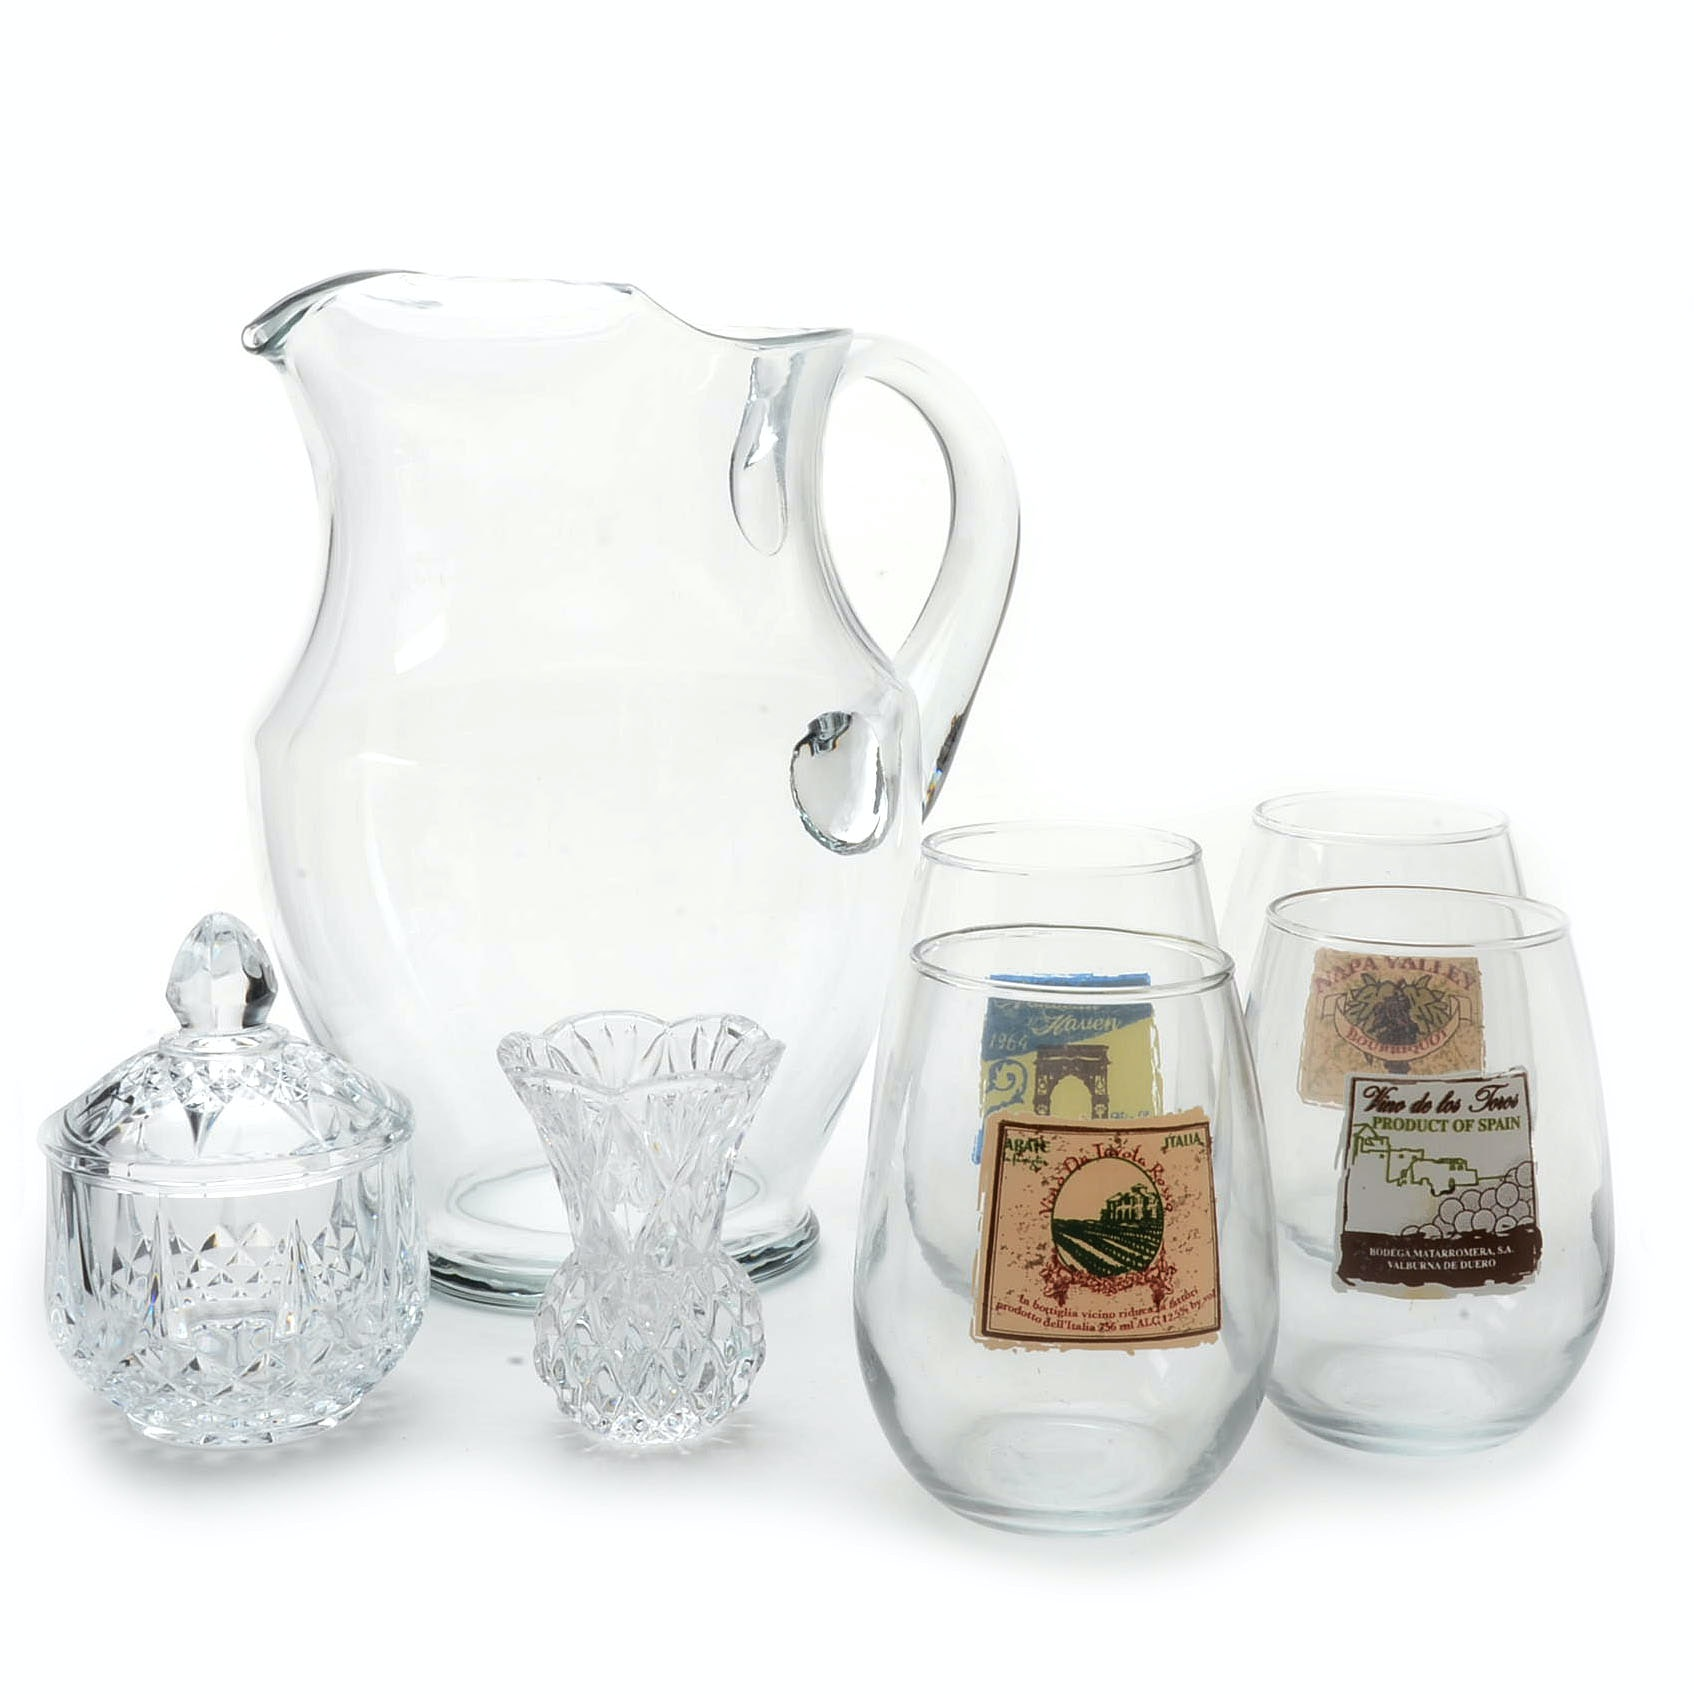 Assortment of Crystal and Glass Tableware